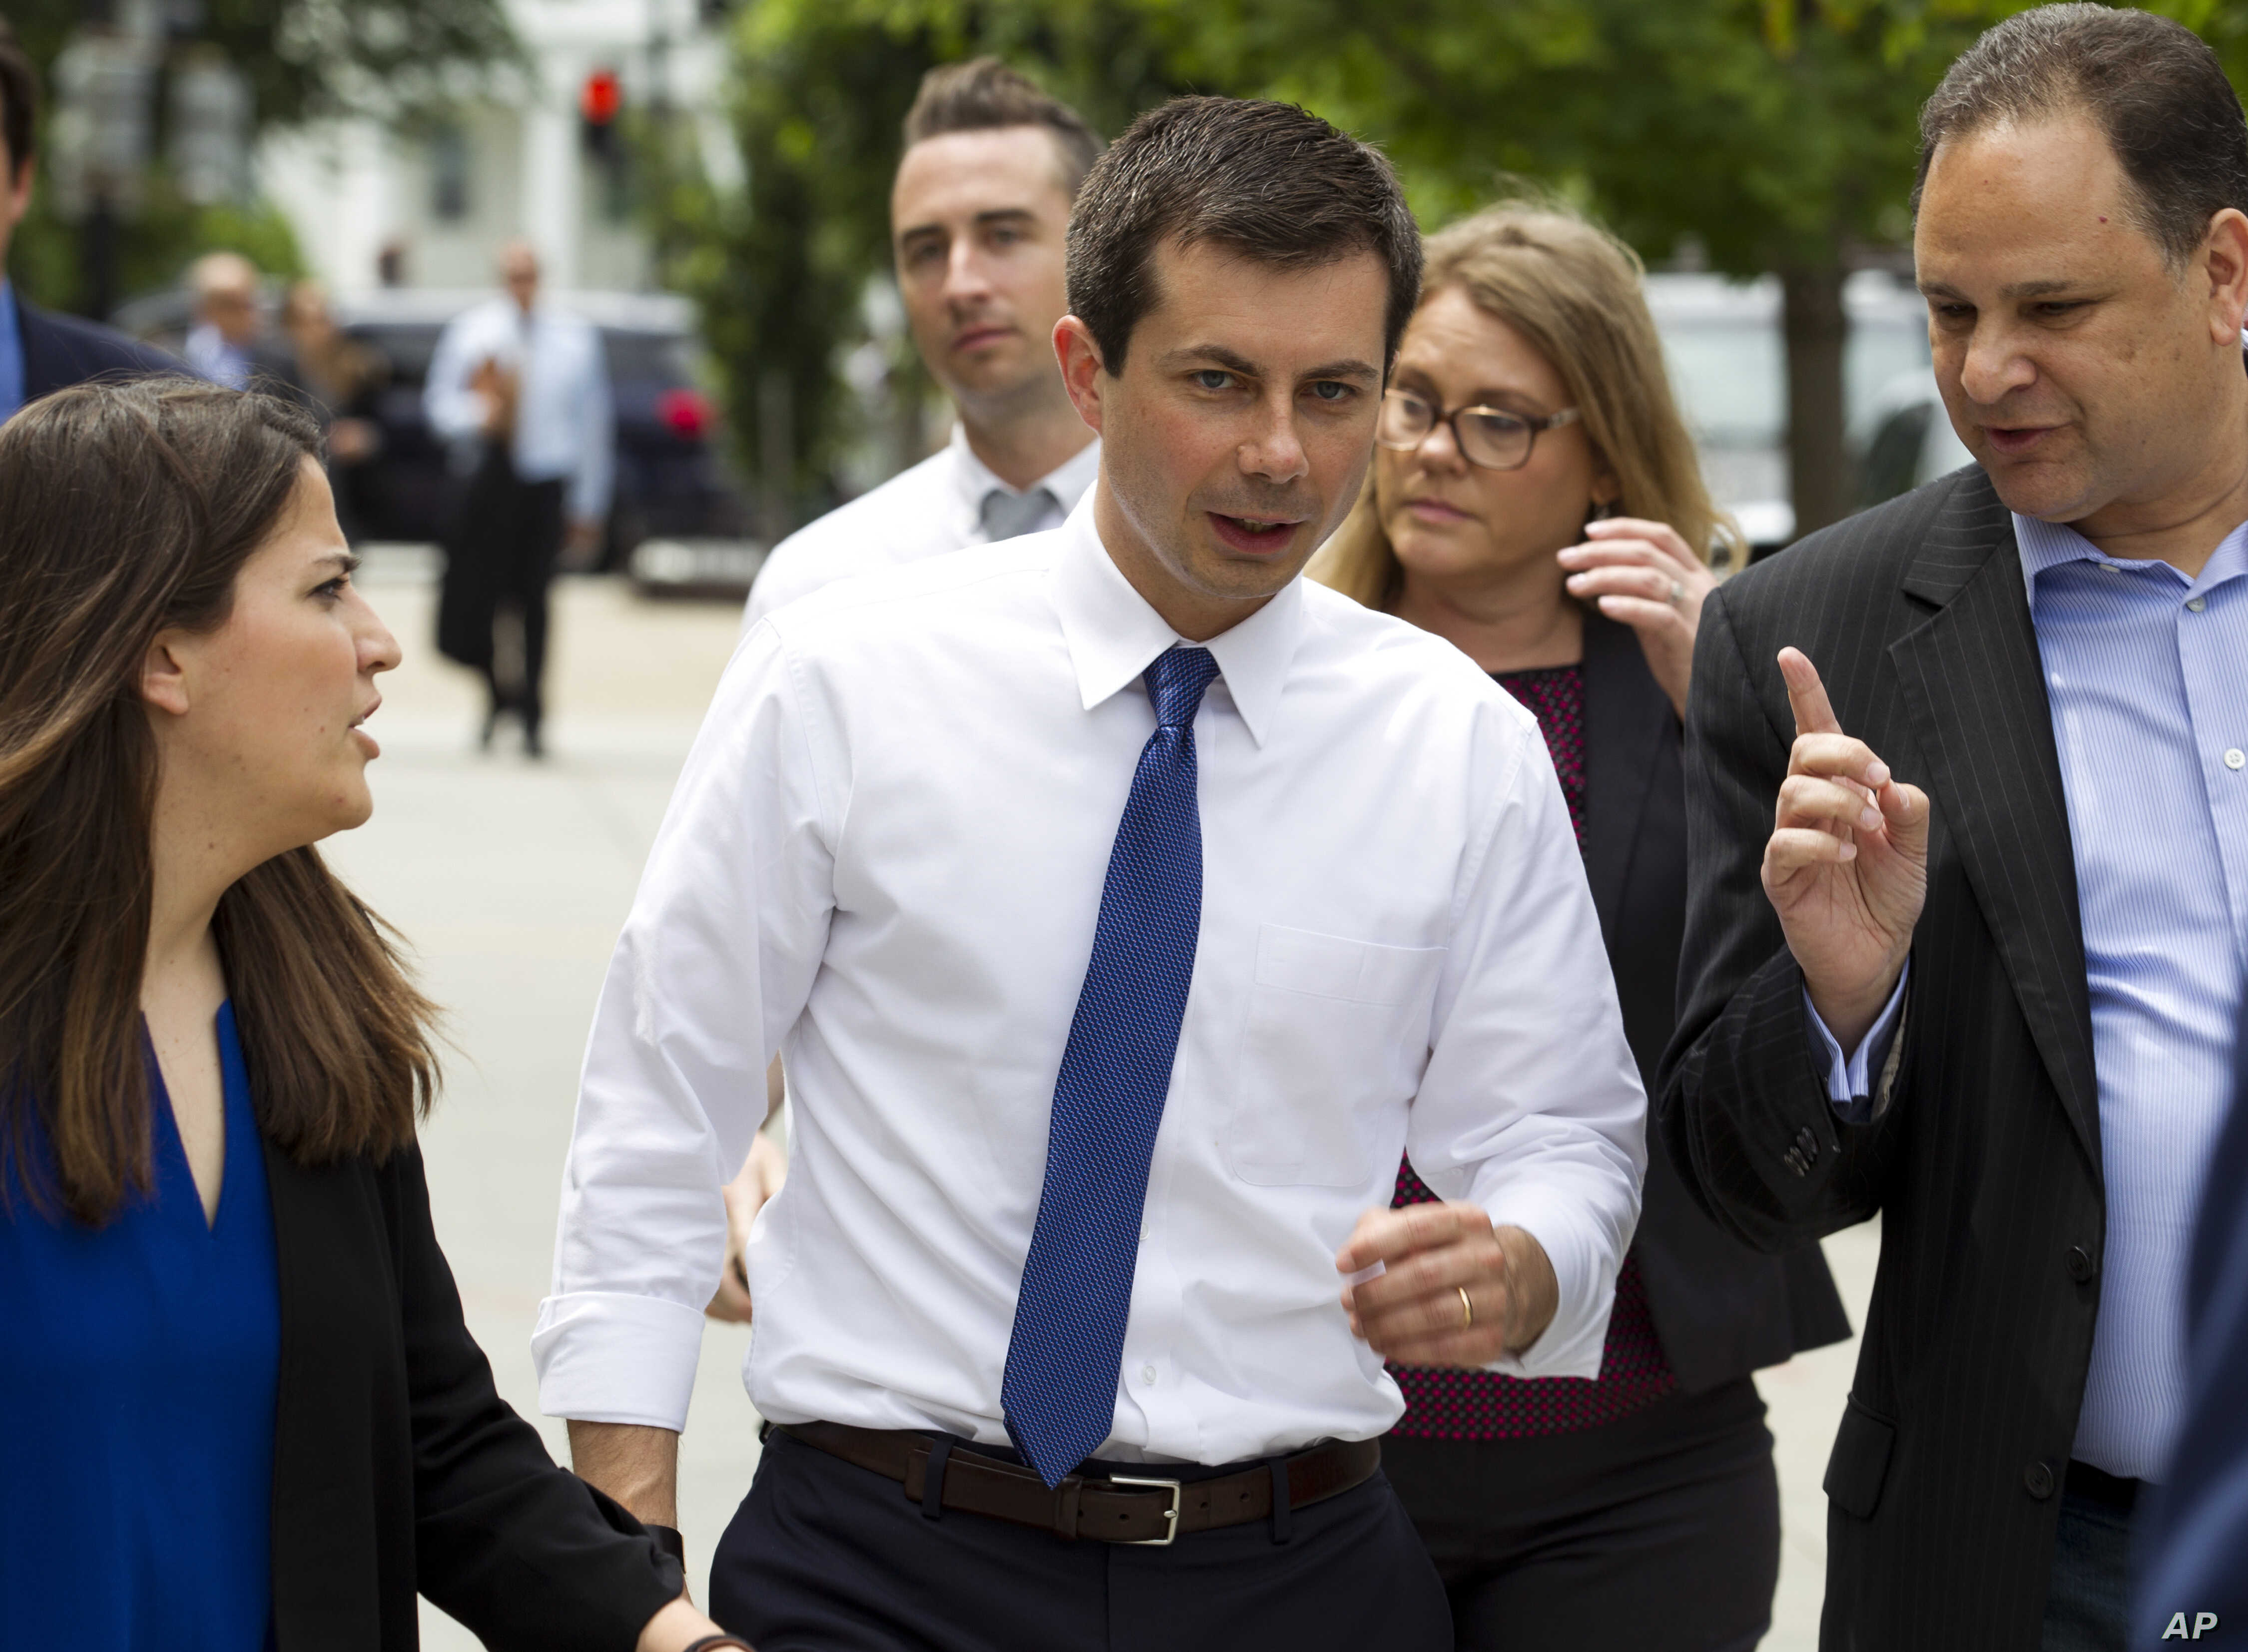 Democratic presidential candidate Mayor Pete Buttigieg, walks to his car after attending a rally, protesting against President Donald Trump policies outside of the White House in Washington, Wednesday, June 12, 2019. (AP Photo/Jose Luis Magana)